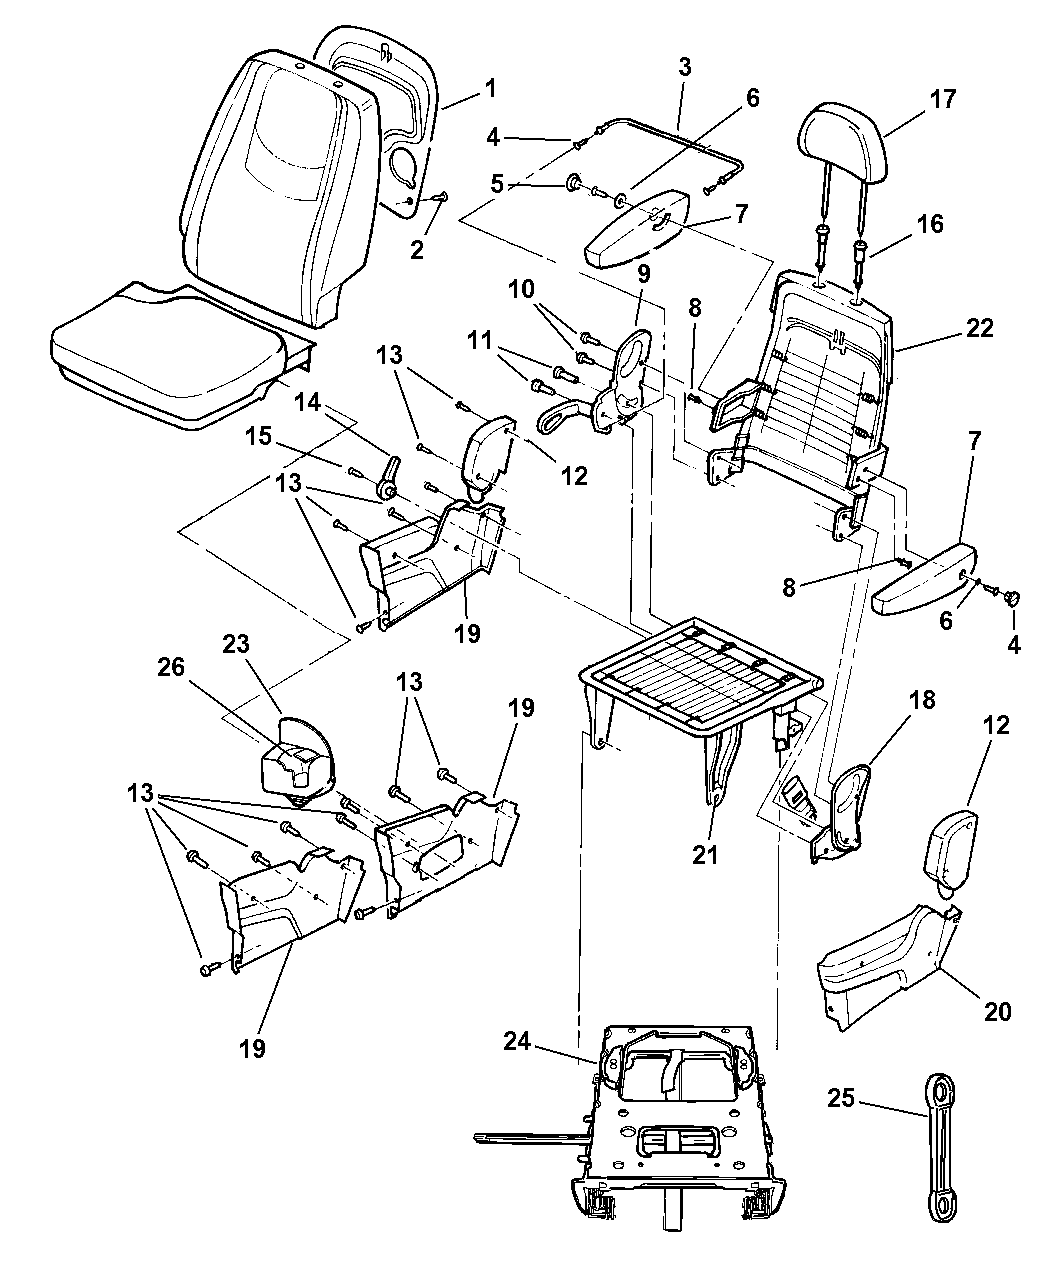 2006 Chrysler Town And Country Interior Parts